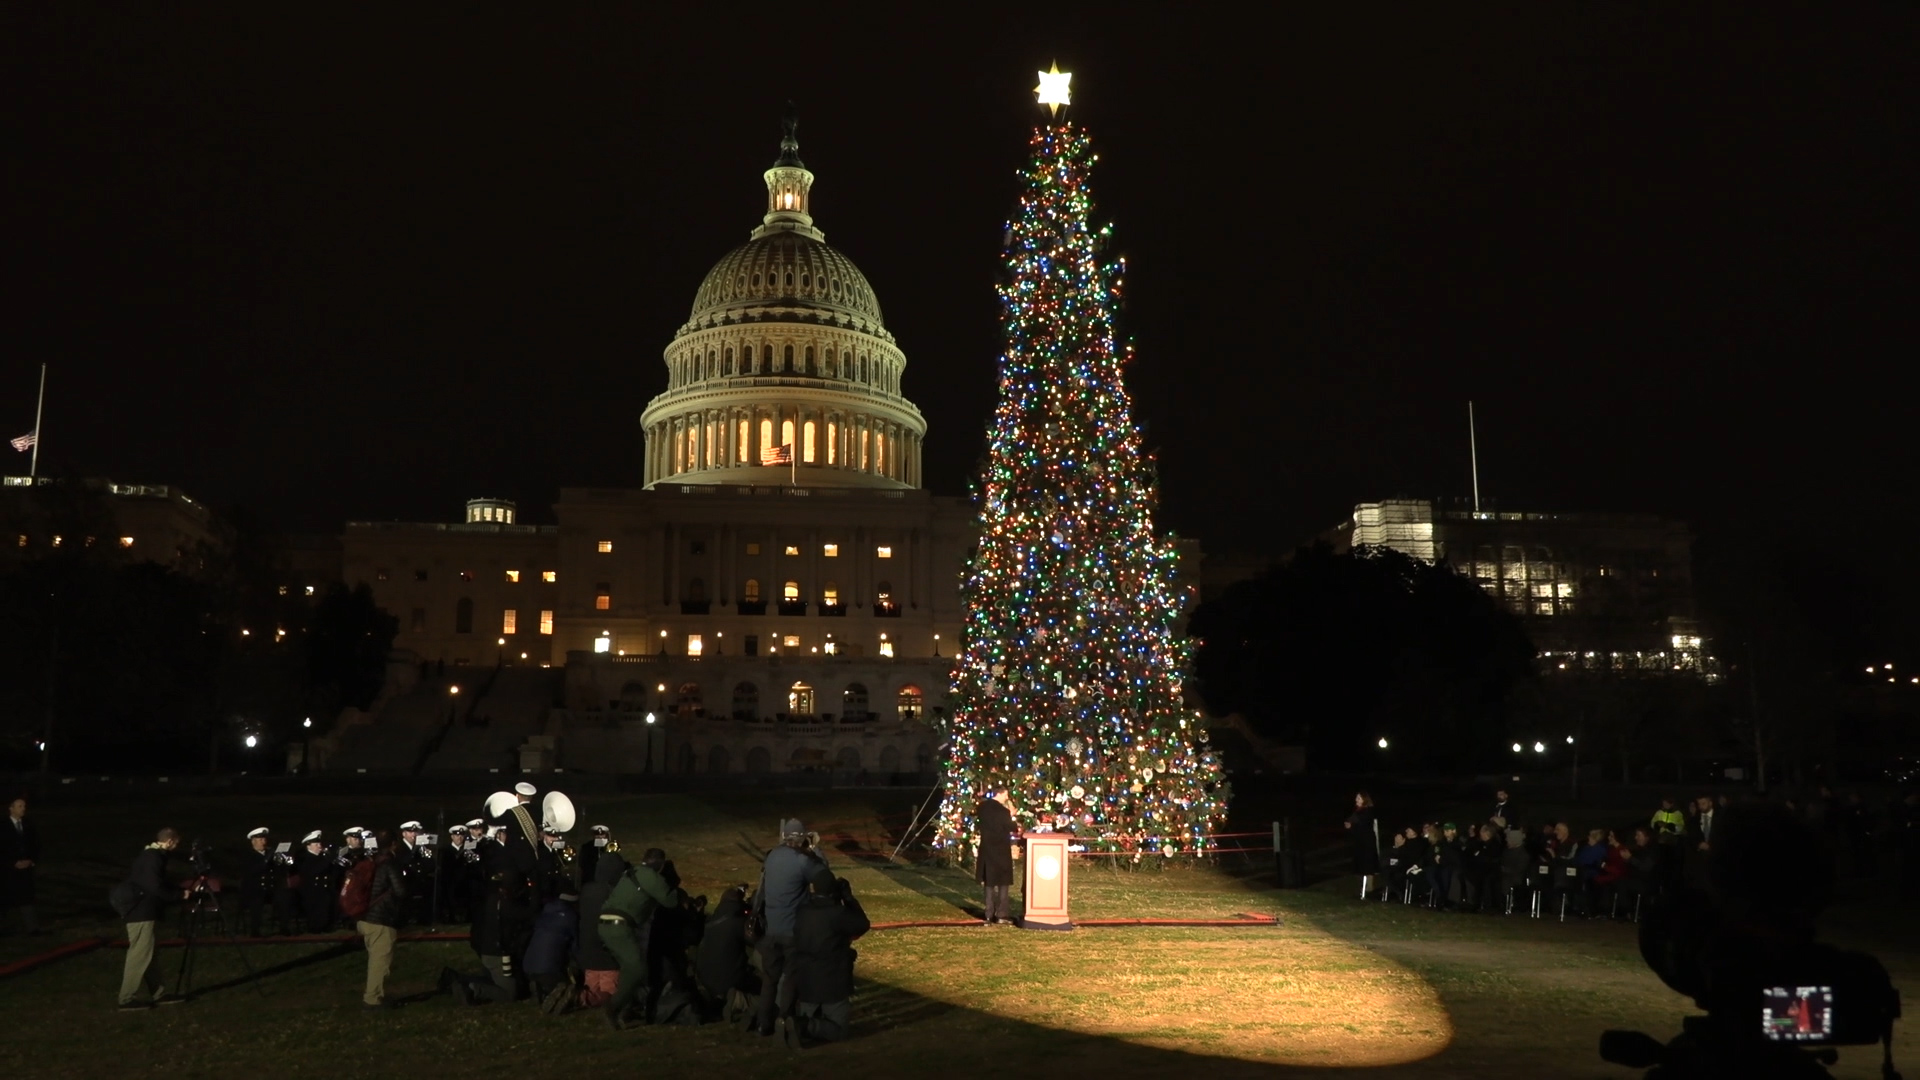 U.S. Capitol Christmas Tree now lit and on display